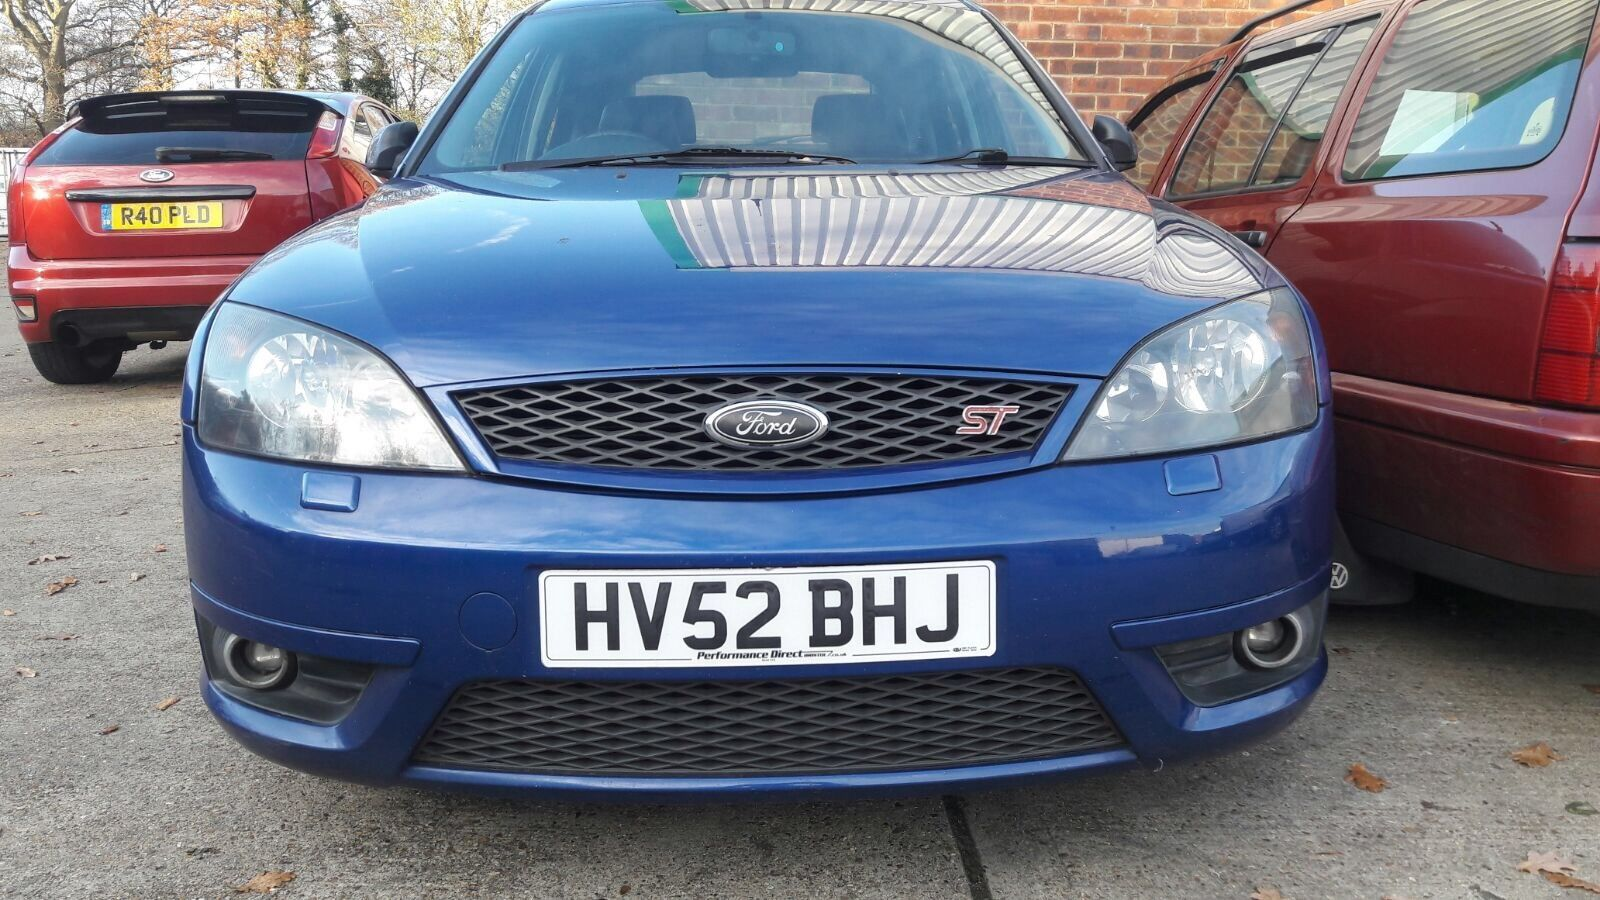 This Ford Mondeo St220 Silver 6 Speed Low Miles 75k Mot Fsh Is For Sale Ford Mondeo Ford Ford Falcon